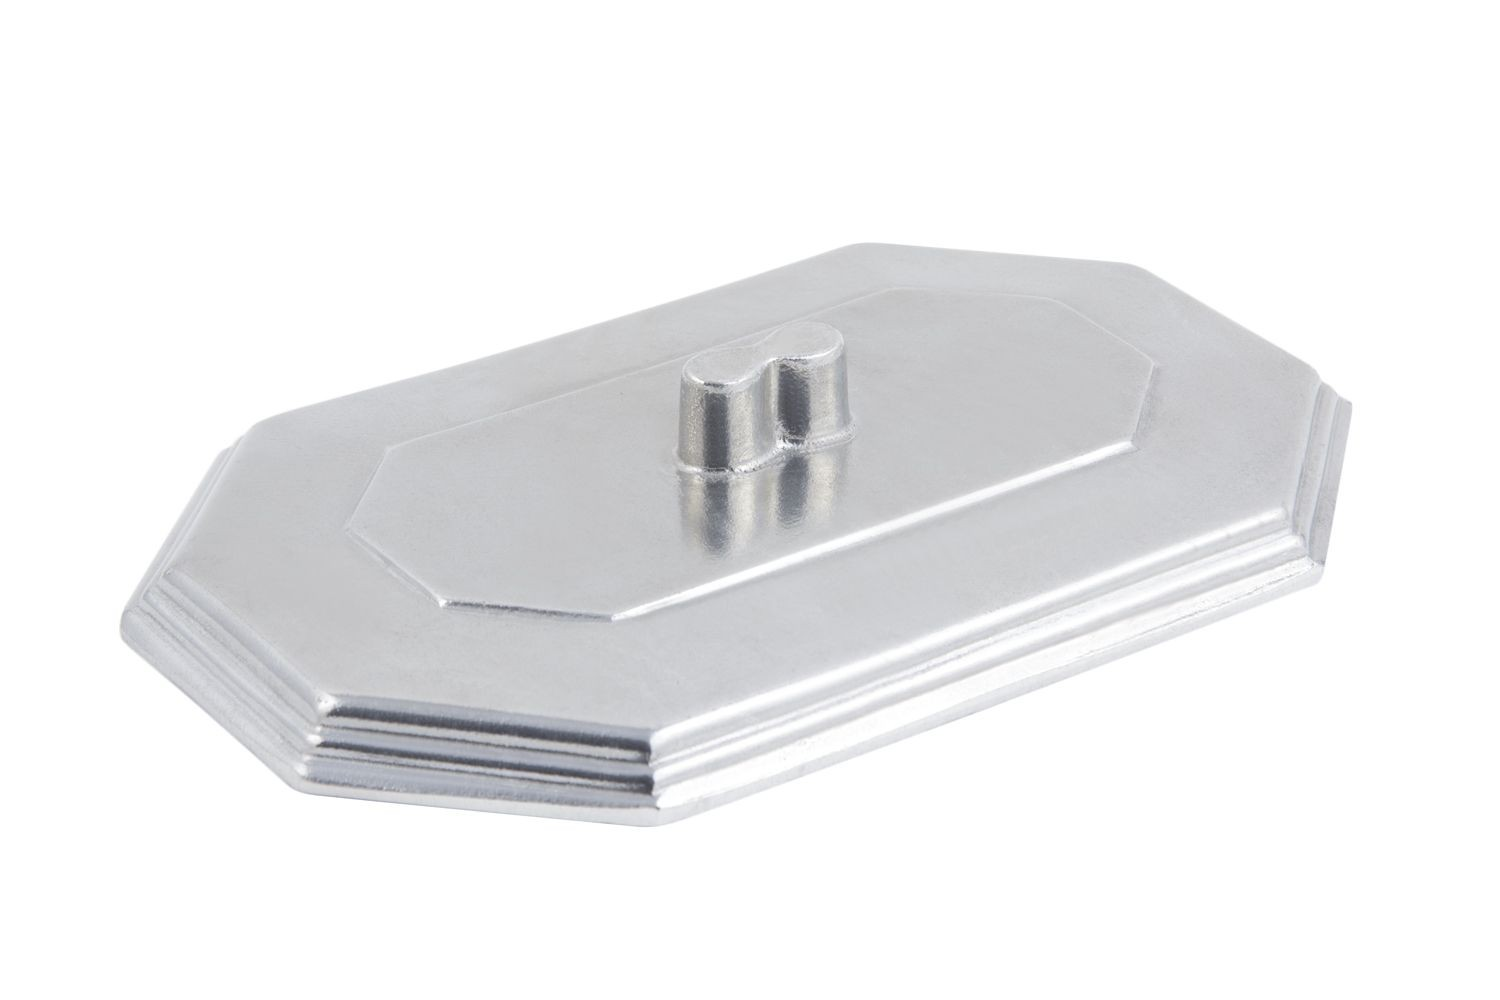 Bon Chef 5068CP Cover for 5068 Octagon Bouillabaisse Dish, Pewter Glo